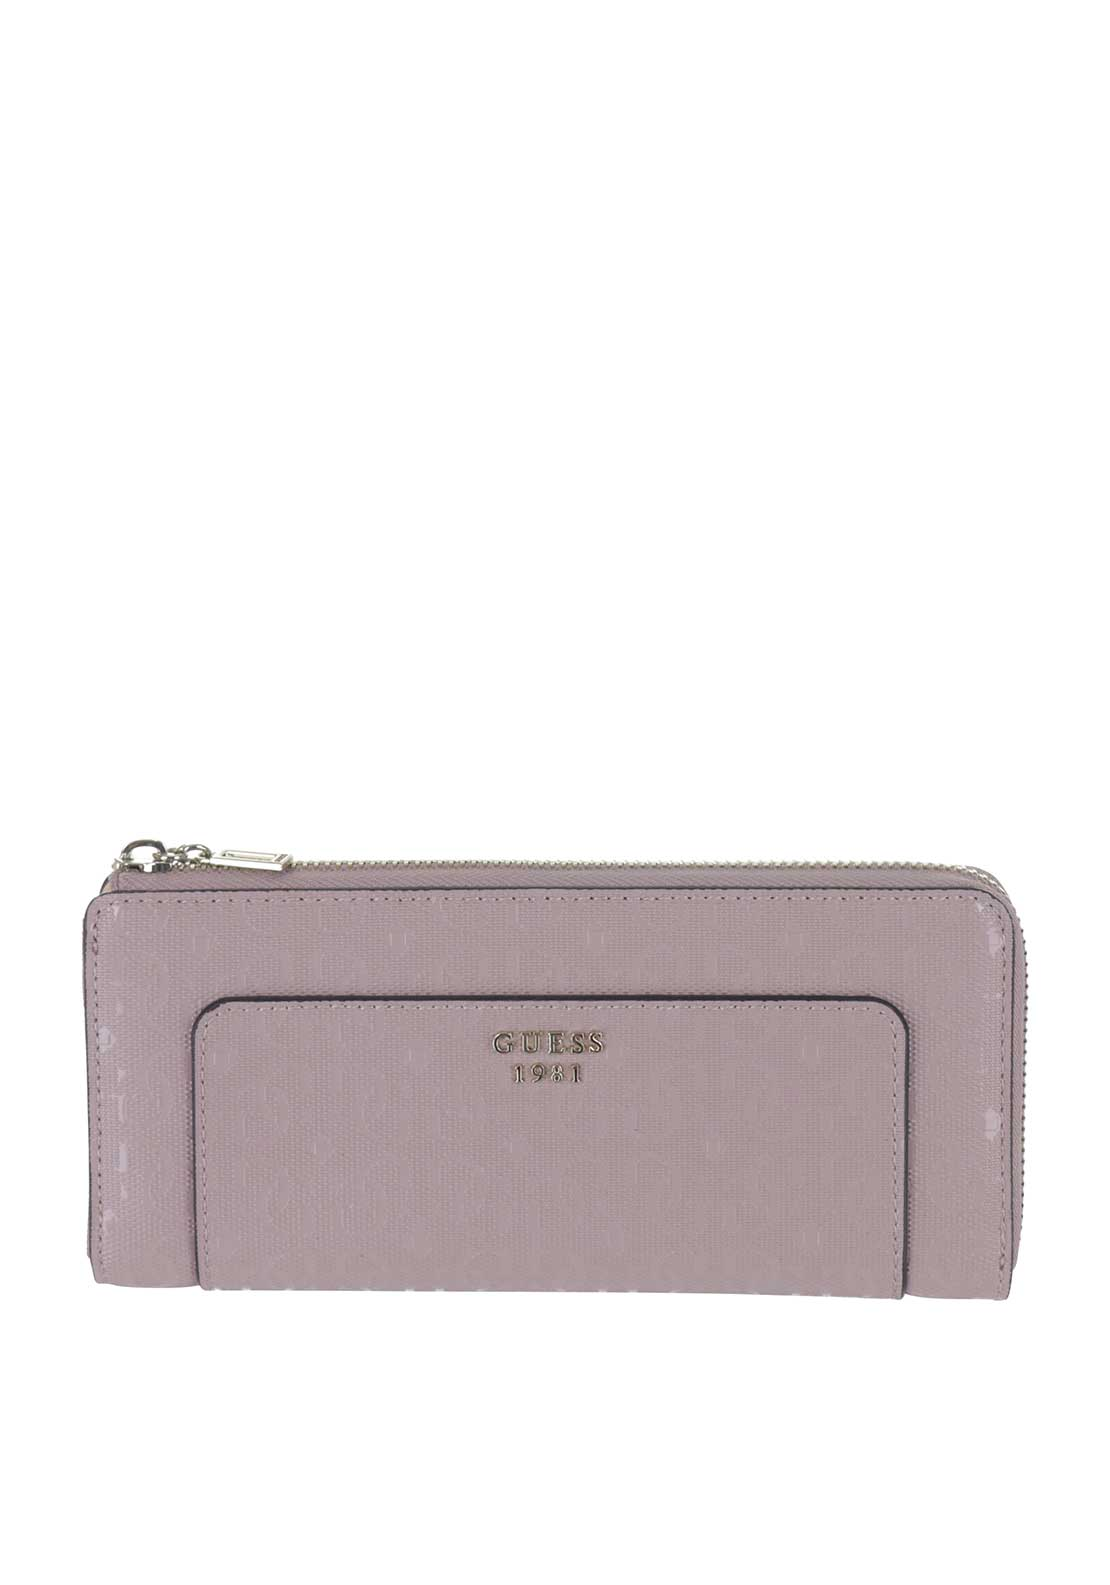 Guess Marian SLG Zip Around Purse, Blush